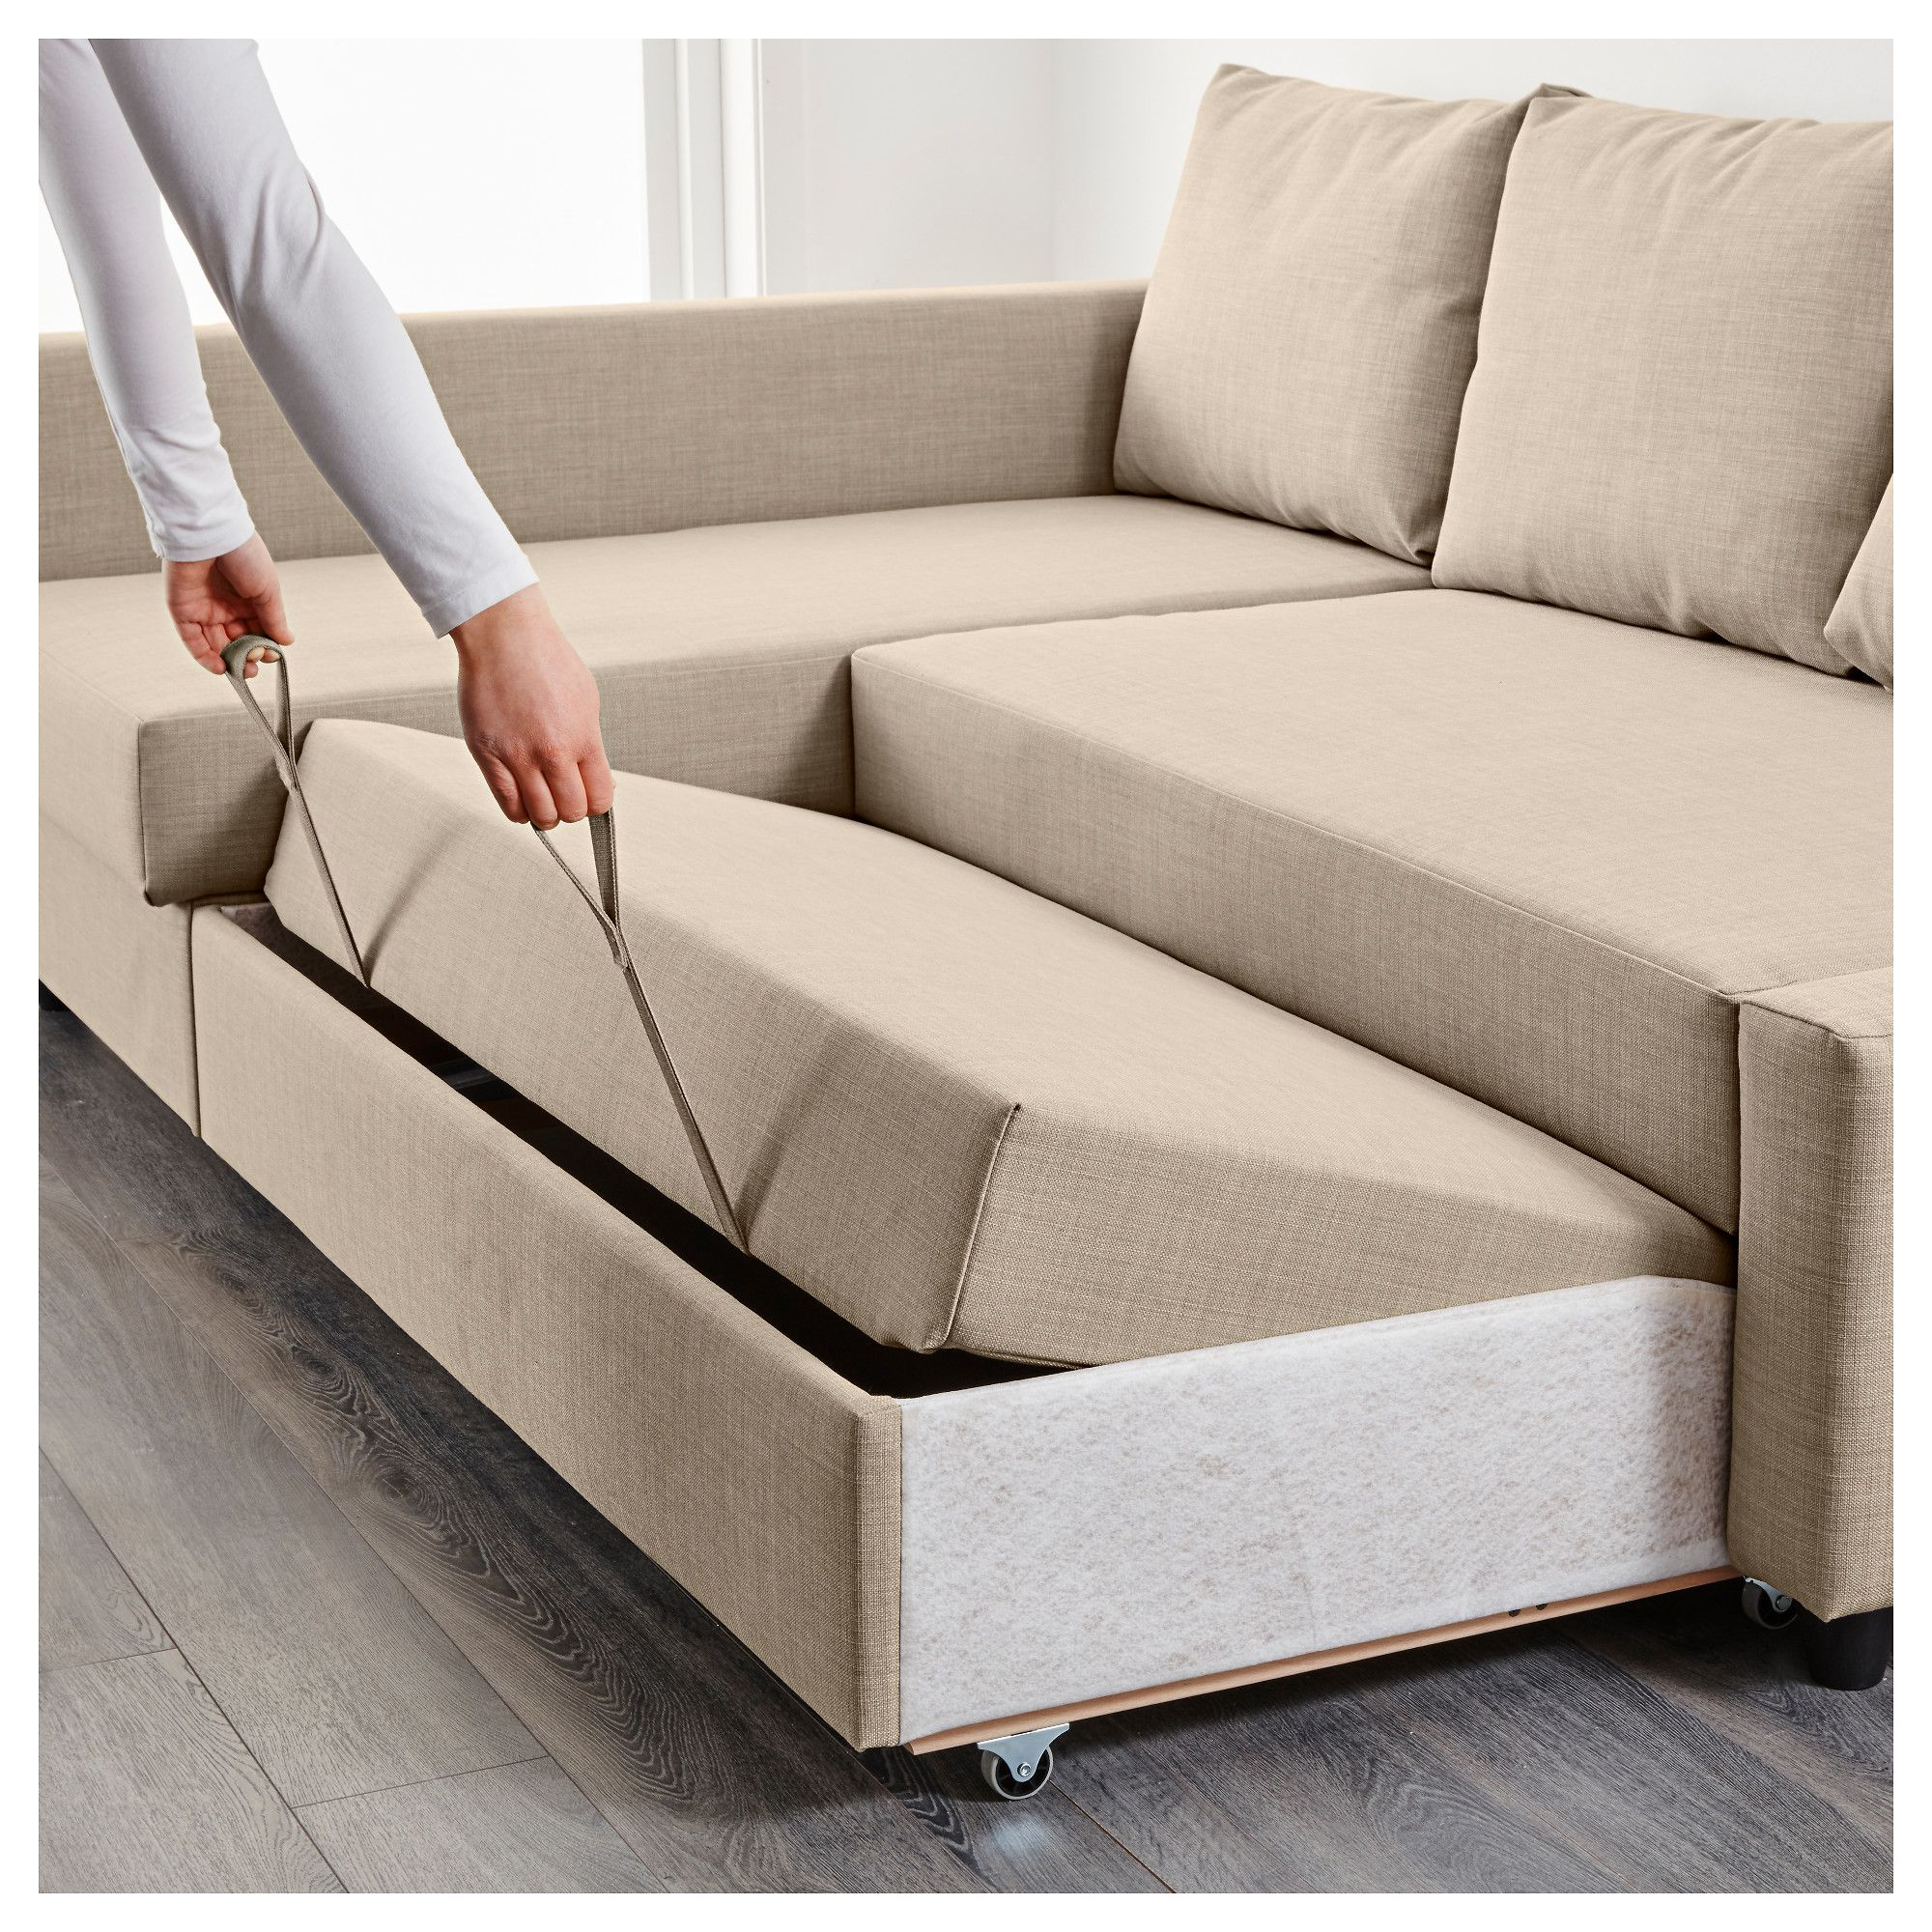 Pin By Sofacouchs On Sectional Sofa In 2019 Sofa Bed With